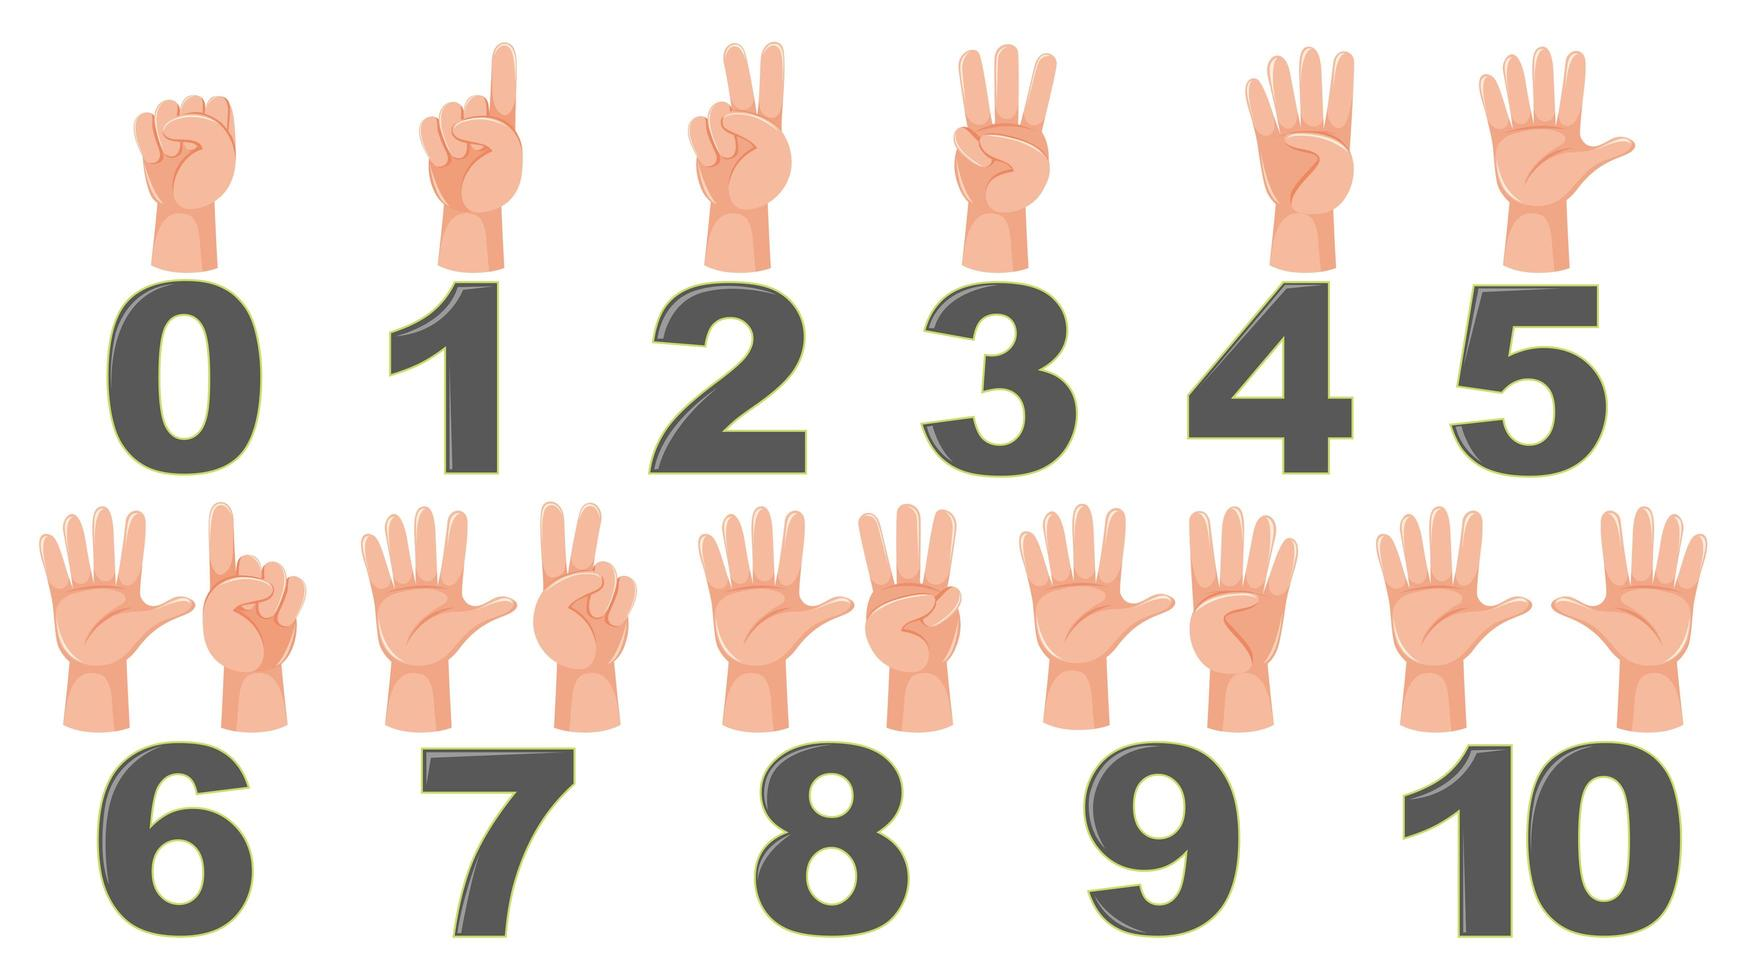 Math count finger gesture vector